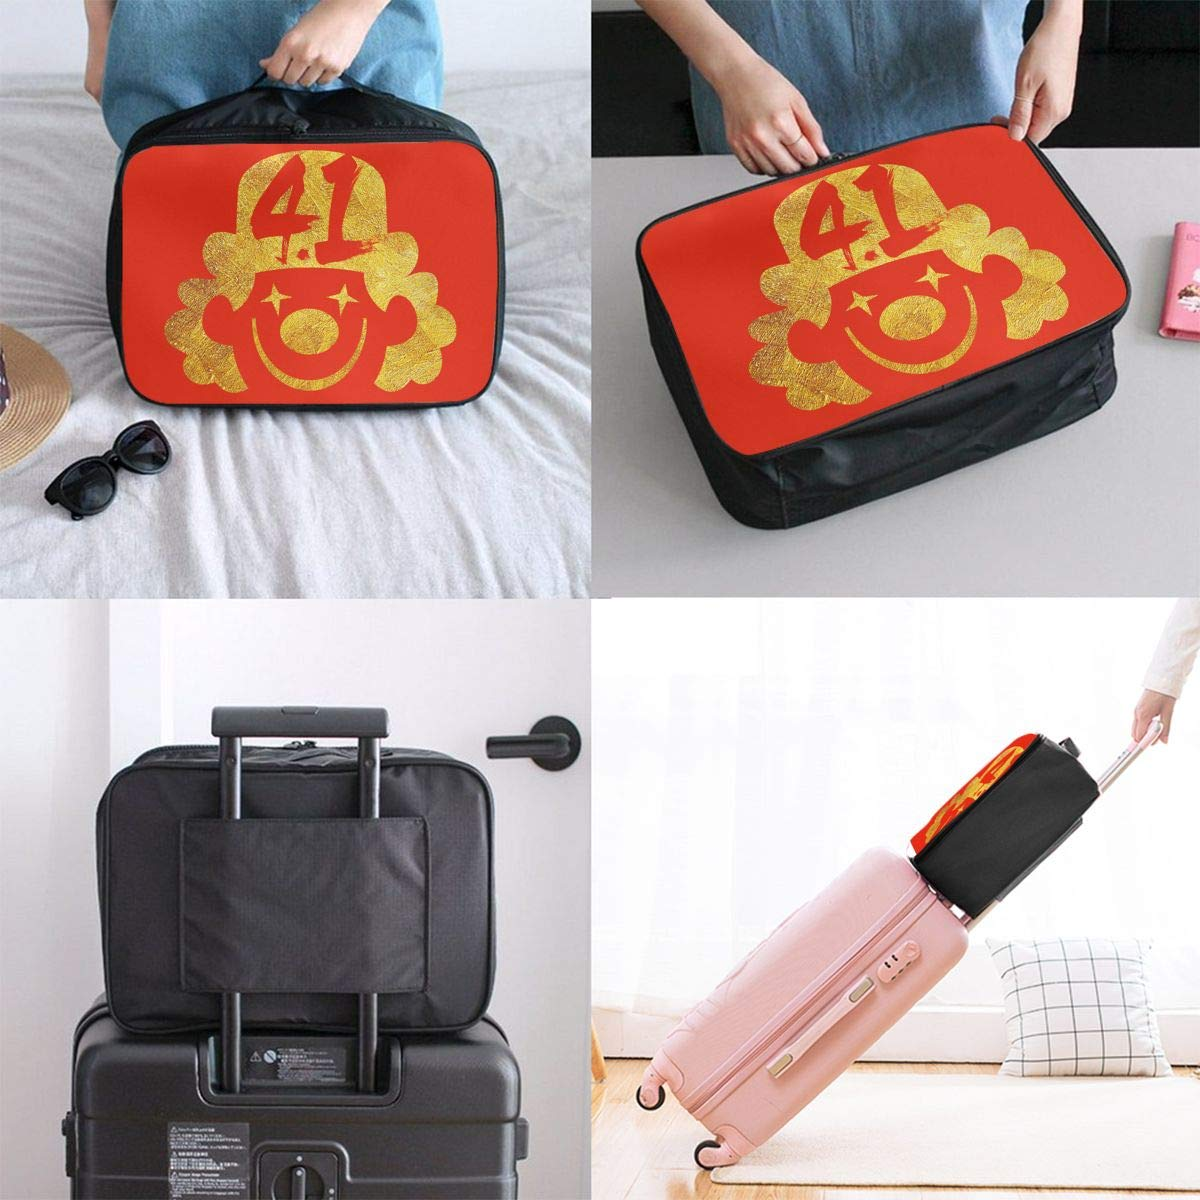 Travel Luggage Duffle Bag Lightweight Portable Handbag April Fools Day Large Capacity Waterproof Foldable Storage Tote